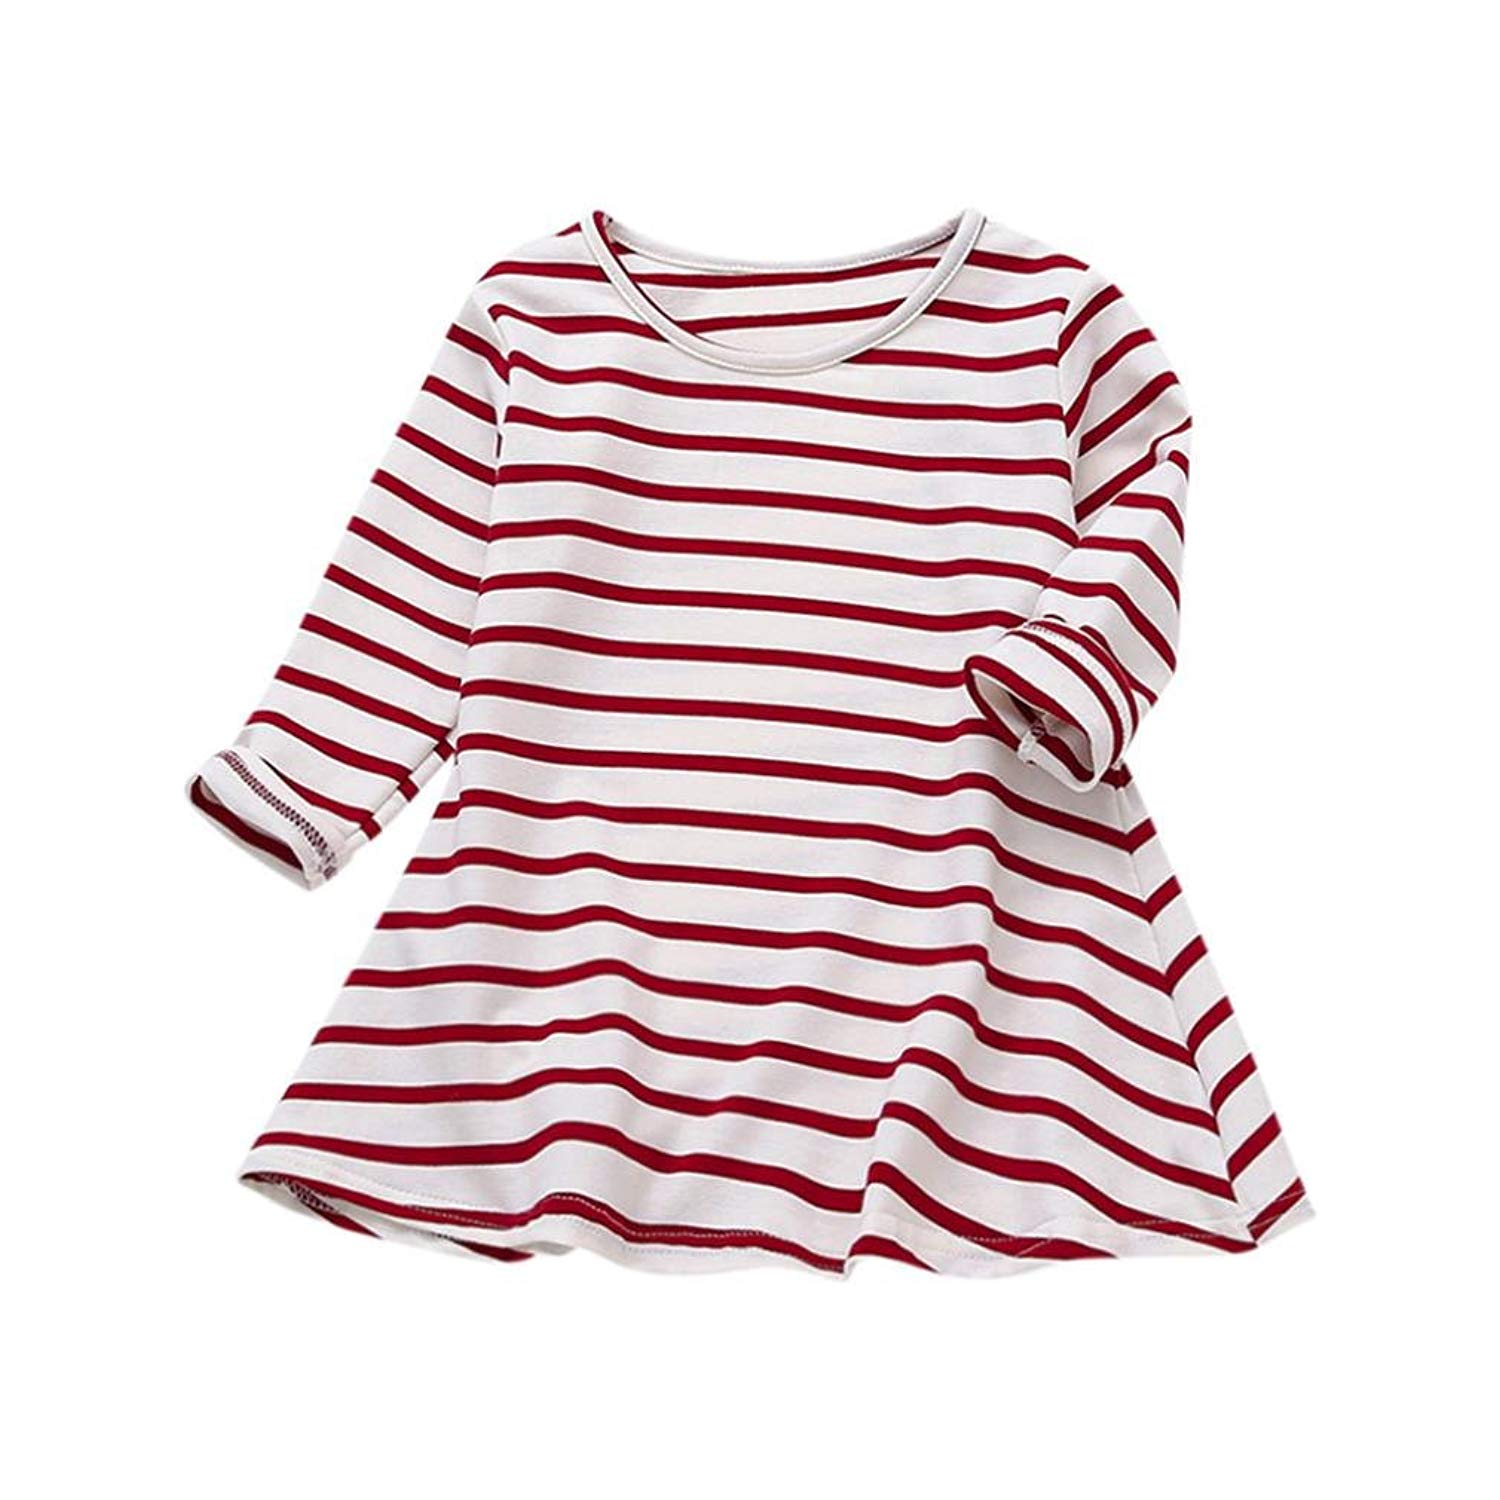 2ca85a02a4c Get Quotations · Toddler Infant Baby Girl Boy Clothes Winter Long Sleeve  Tops Christmas Shirts Dress Outfits